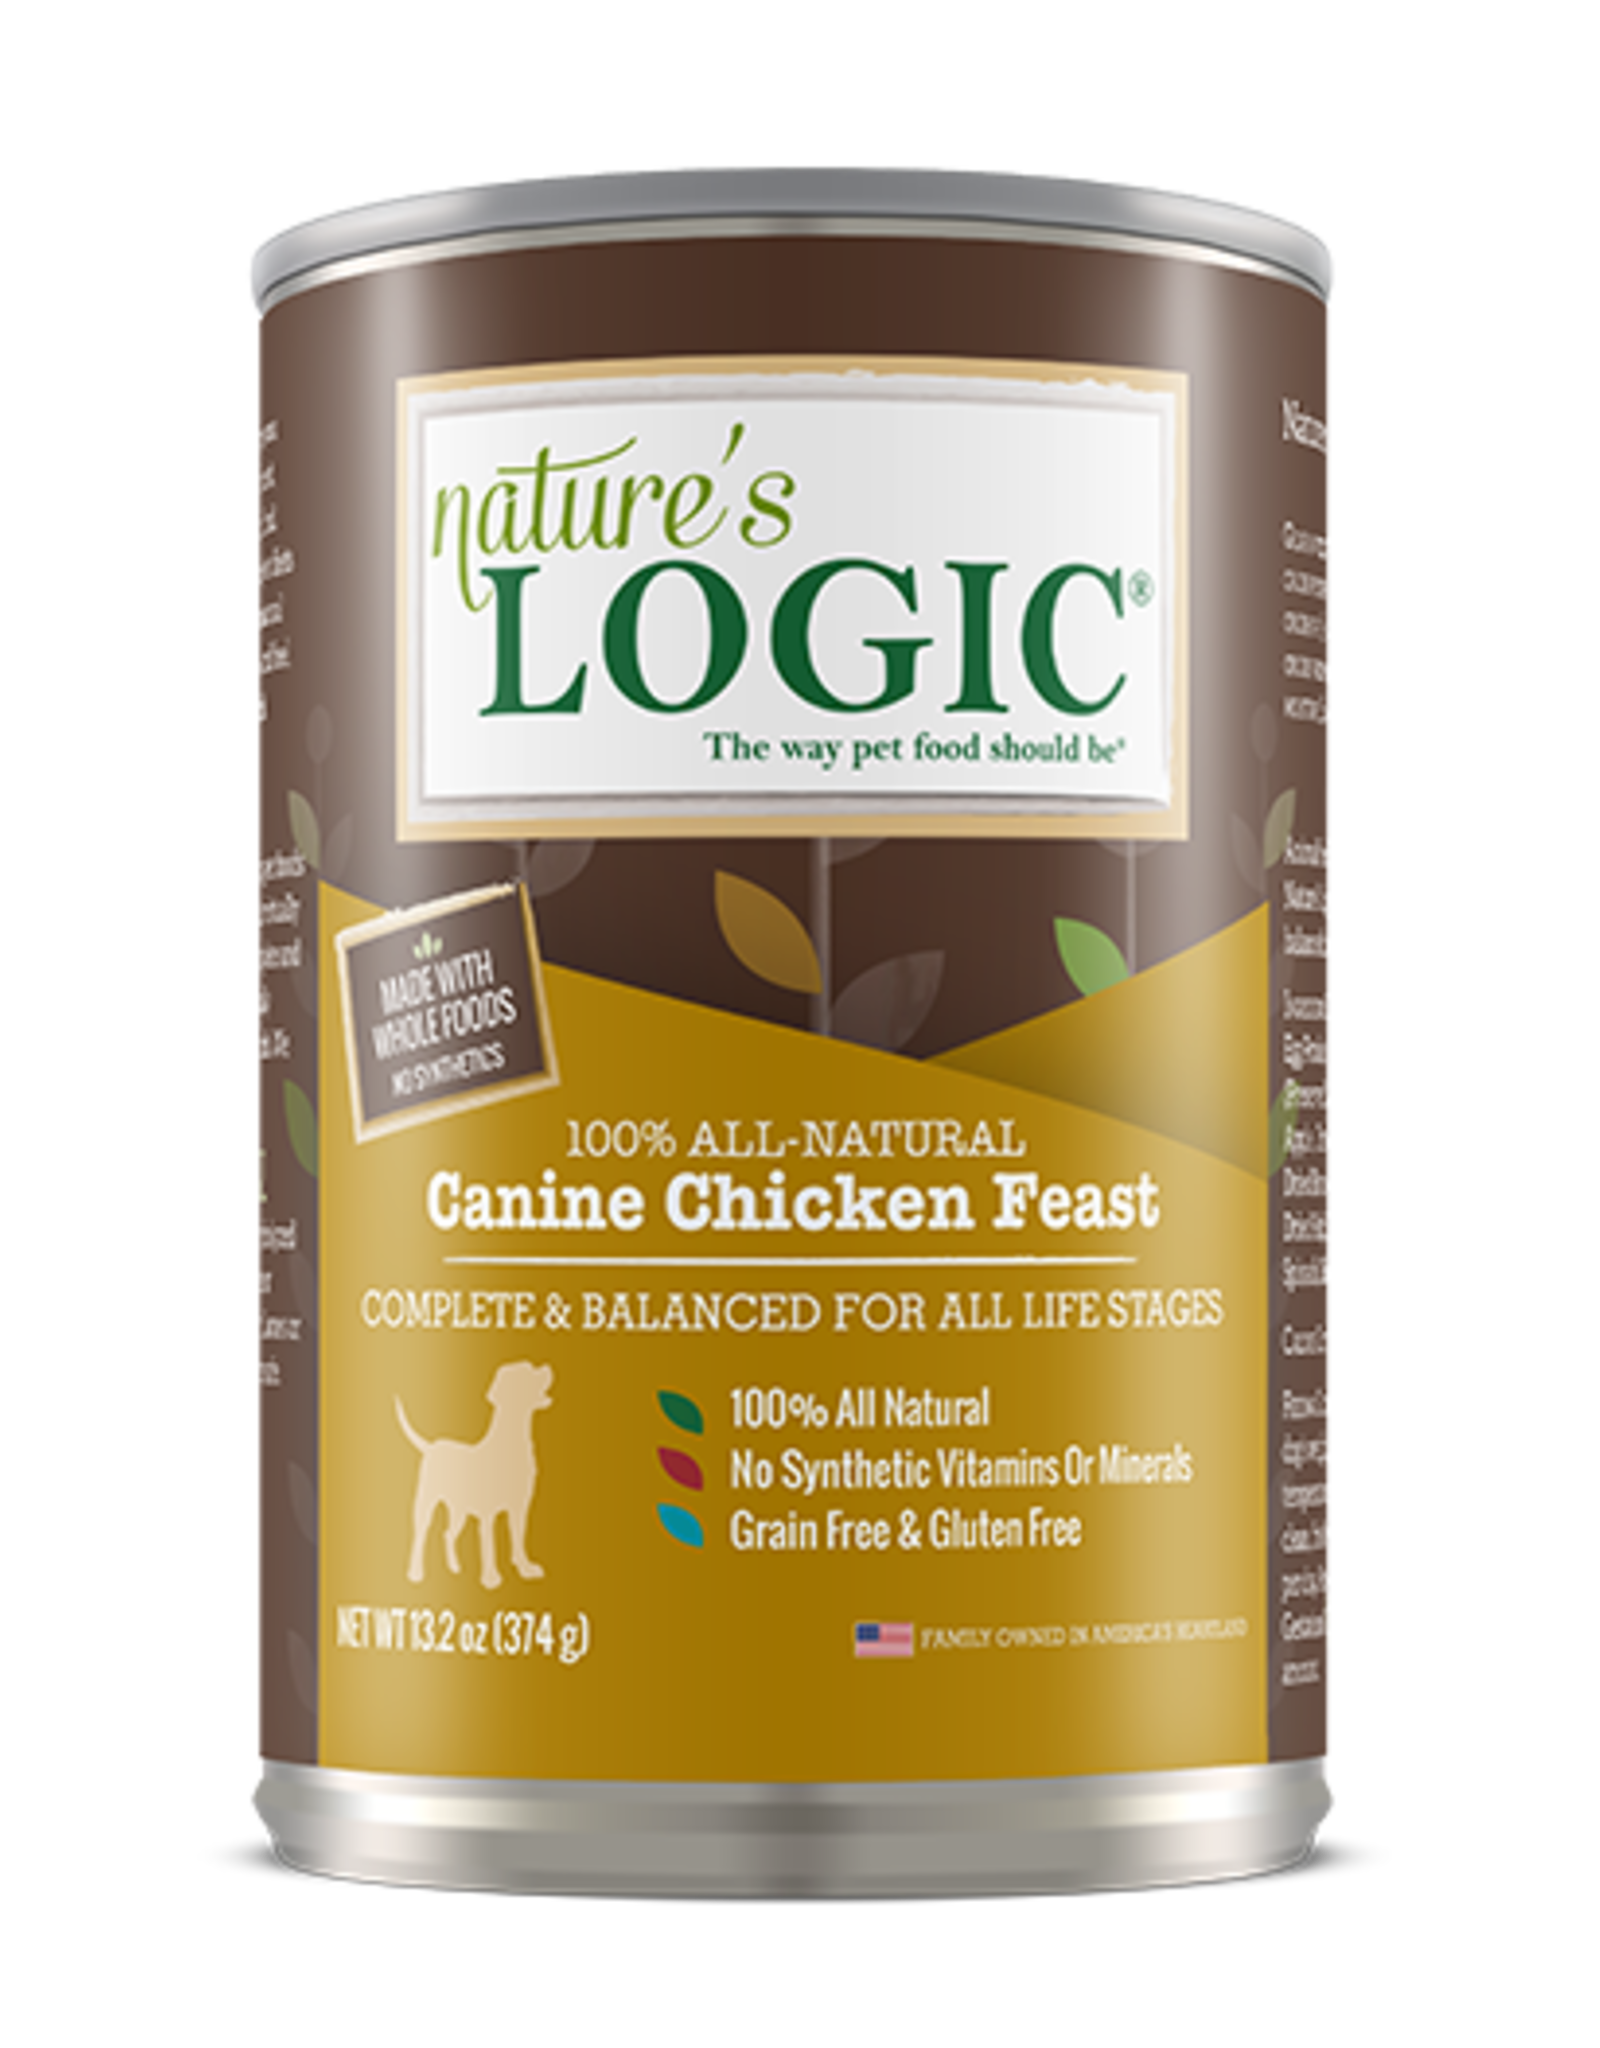 Nature's Logic Nature's Logic Wet Dog Food Chicken Feast 13oz Can Grain Free